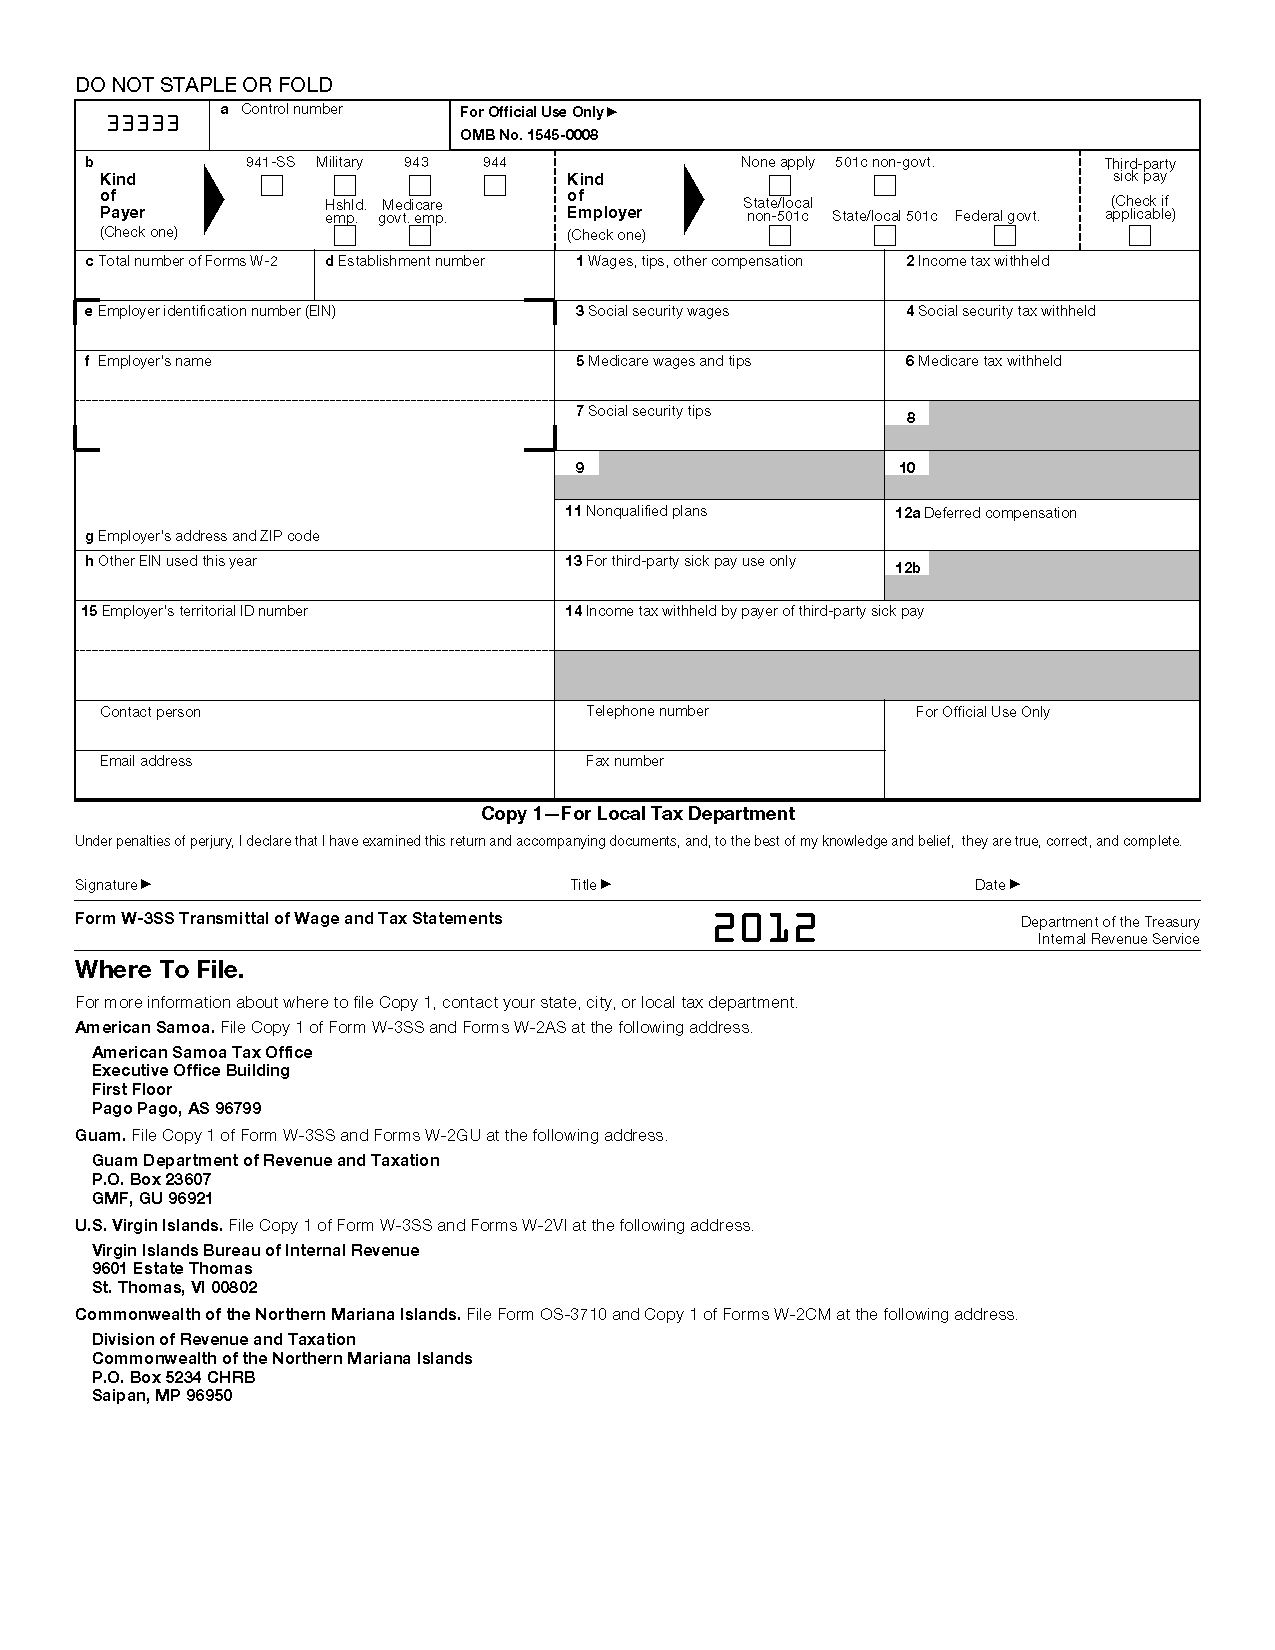 Form w 3ss transmittal of wage and tax statements info copy only view all 2011 irs tax forms falaconquin